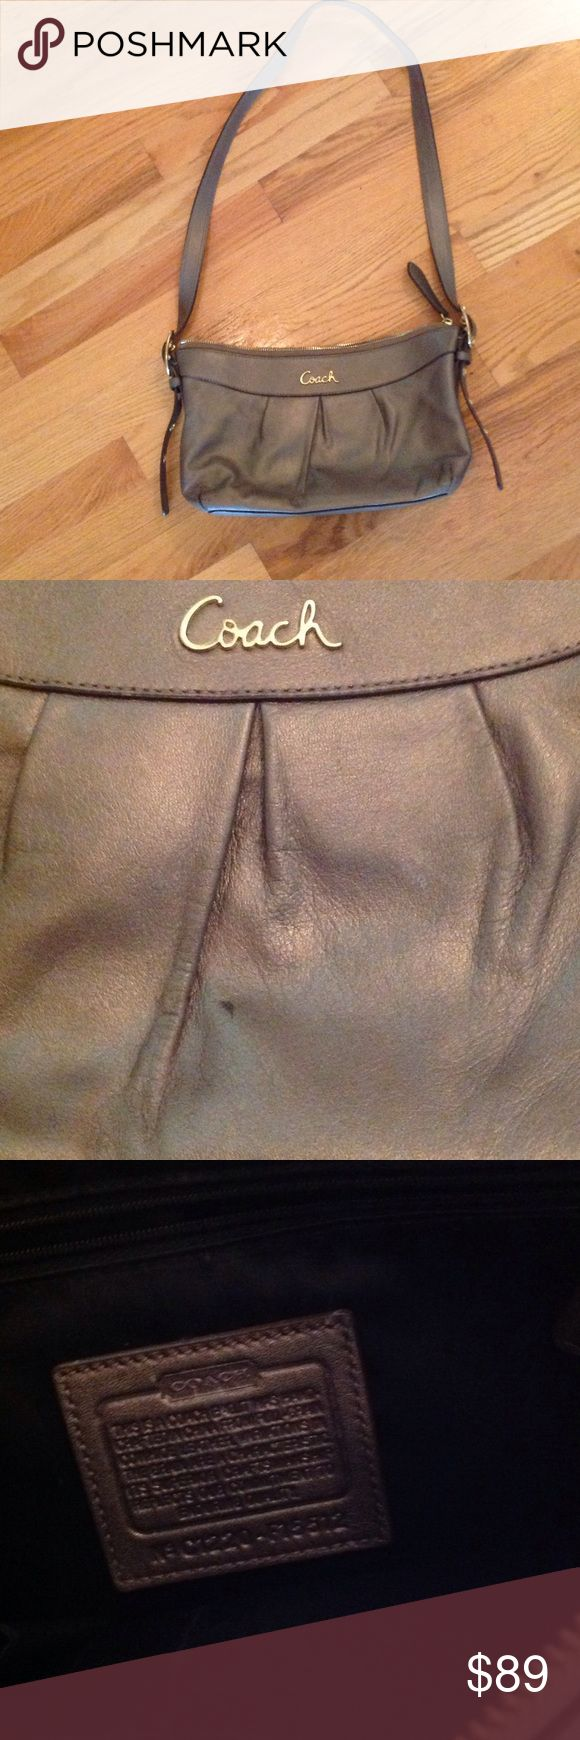 """Coach Leather Shoulder Bag Gorgeous Coach leather bag in a rich, metallic bronze color.  Adjustable shoulder straps feature gold hardware and grommets for an industrial, mixed media look.  Measures approx 12"""" x 5.5"""".  Very small mark on front, shown in 2nd photo.  Otherwise, in excellent pre-owned condition.  Check out my other listings to bundle and save:). Coach Bags Shoulder Bags"""